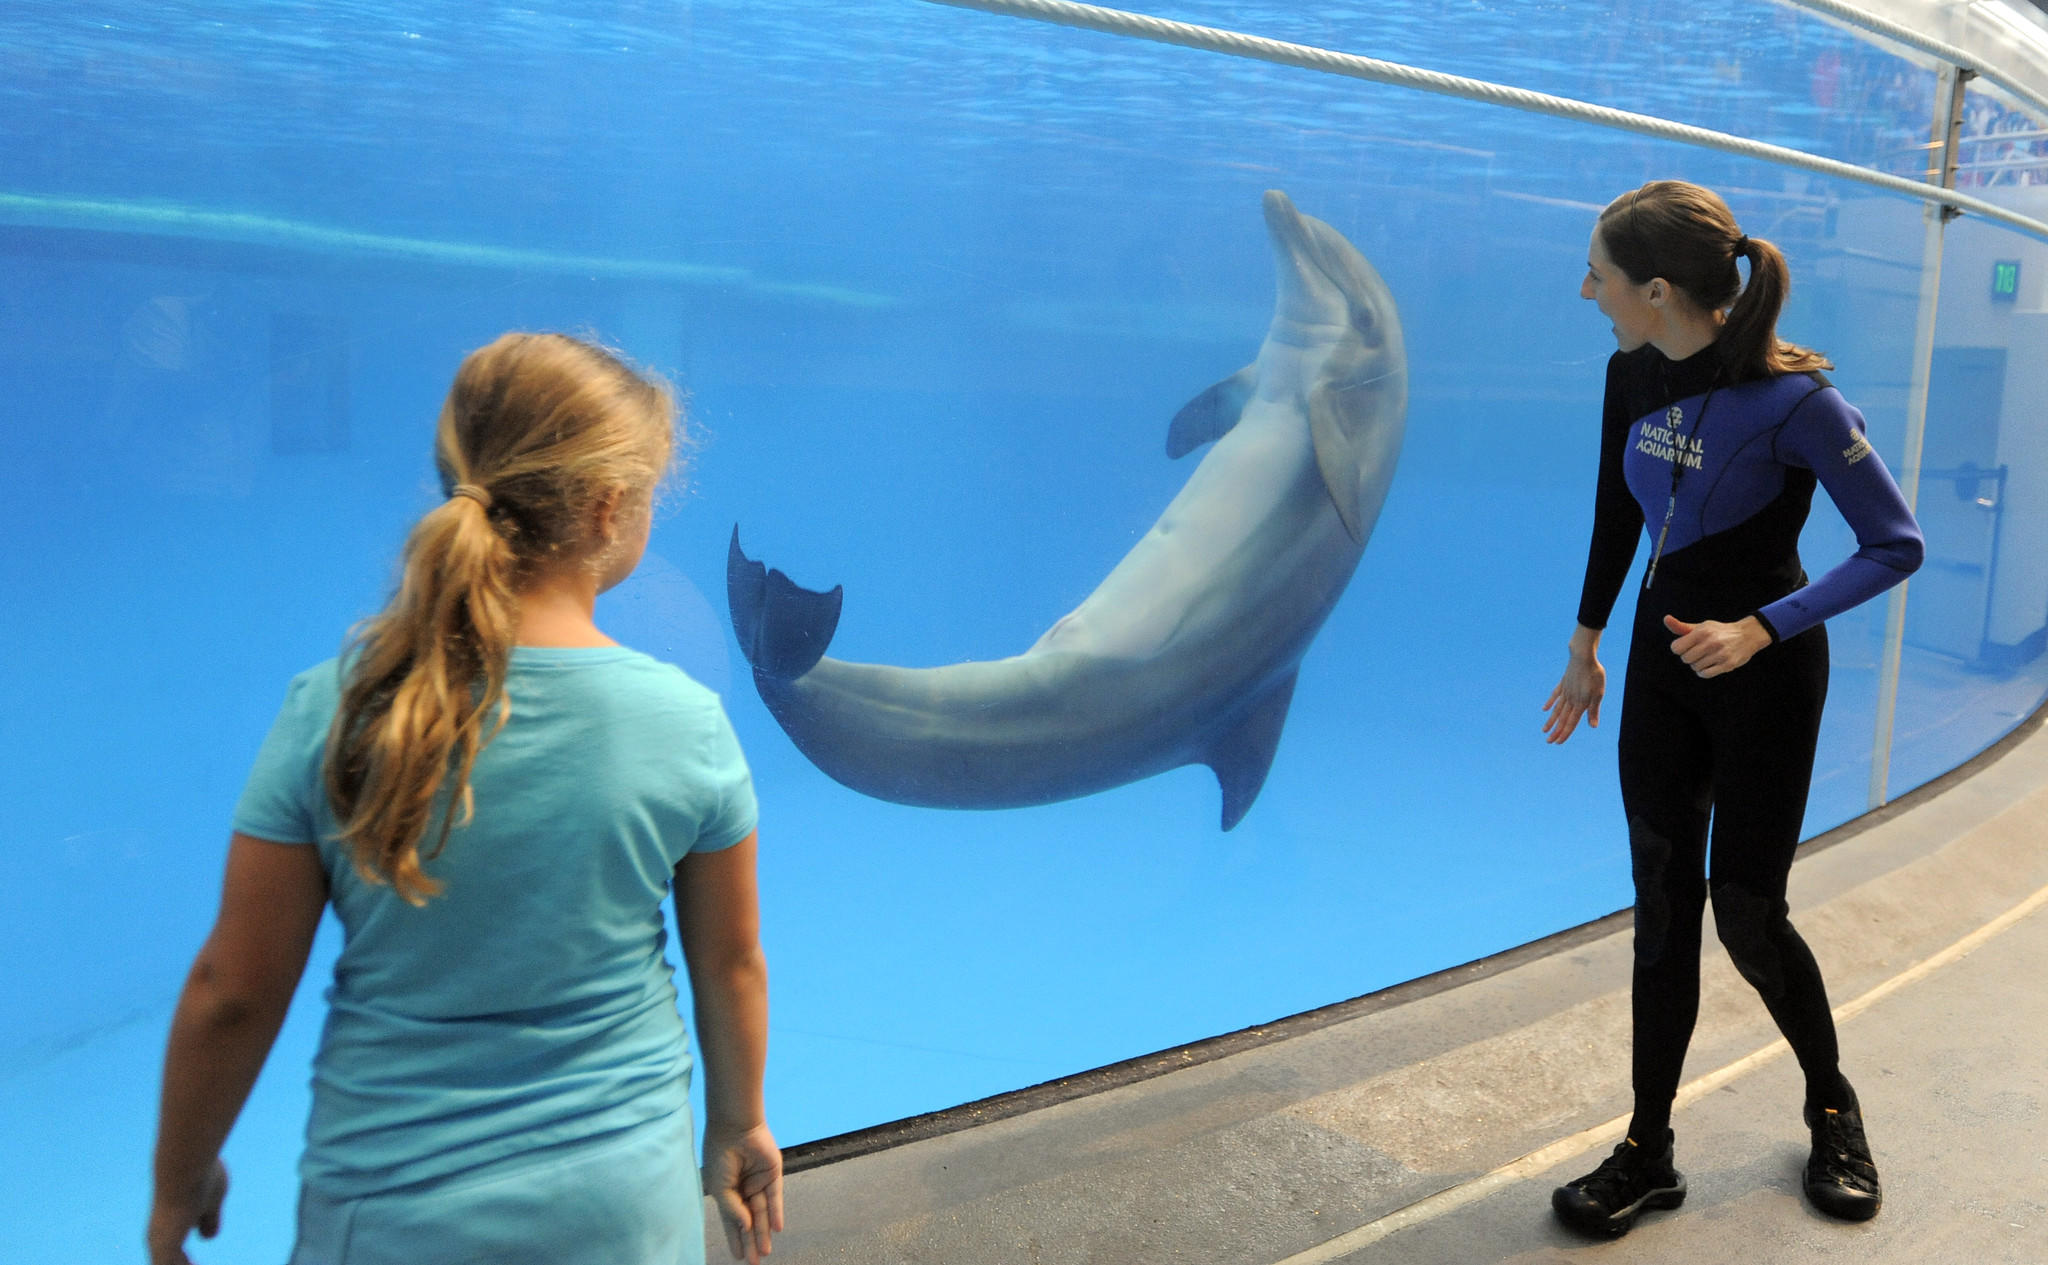 National Aquarium To Consider Whether To Keep Dolphins On